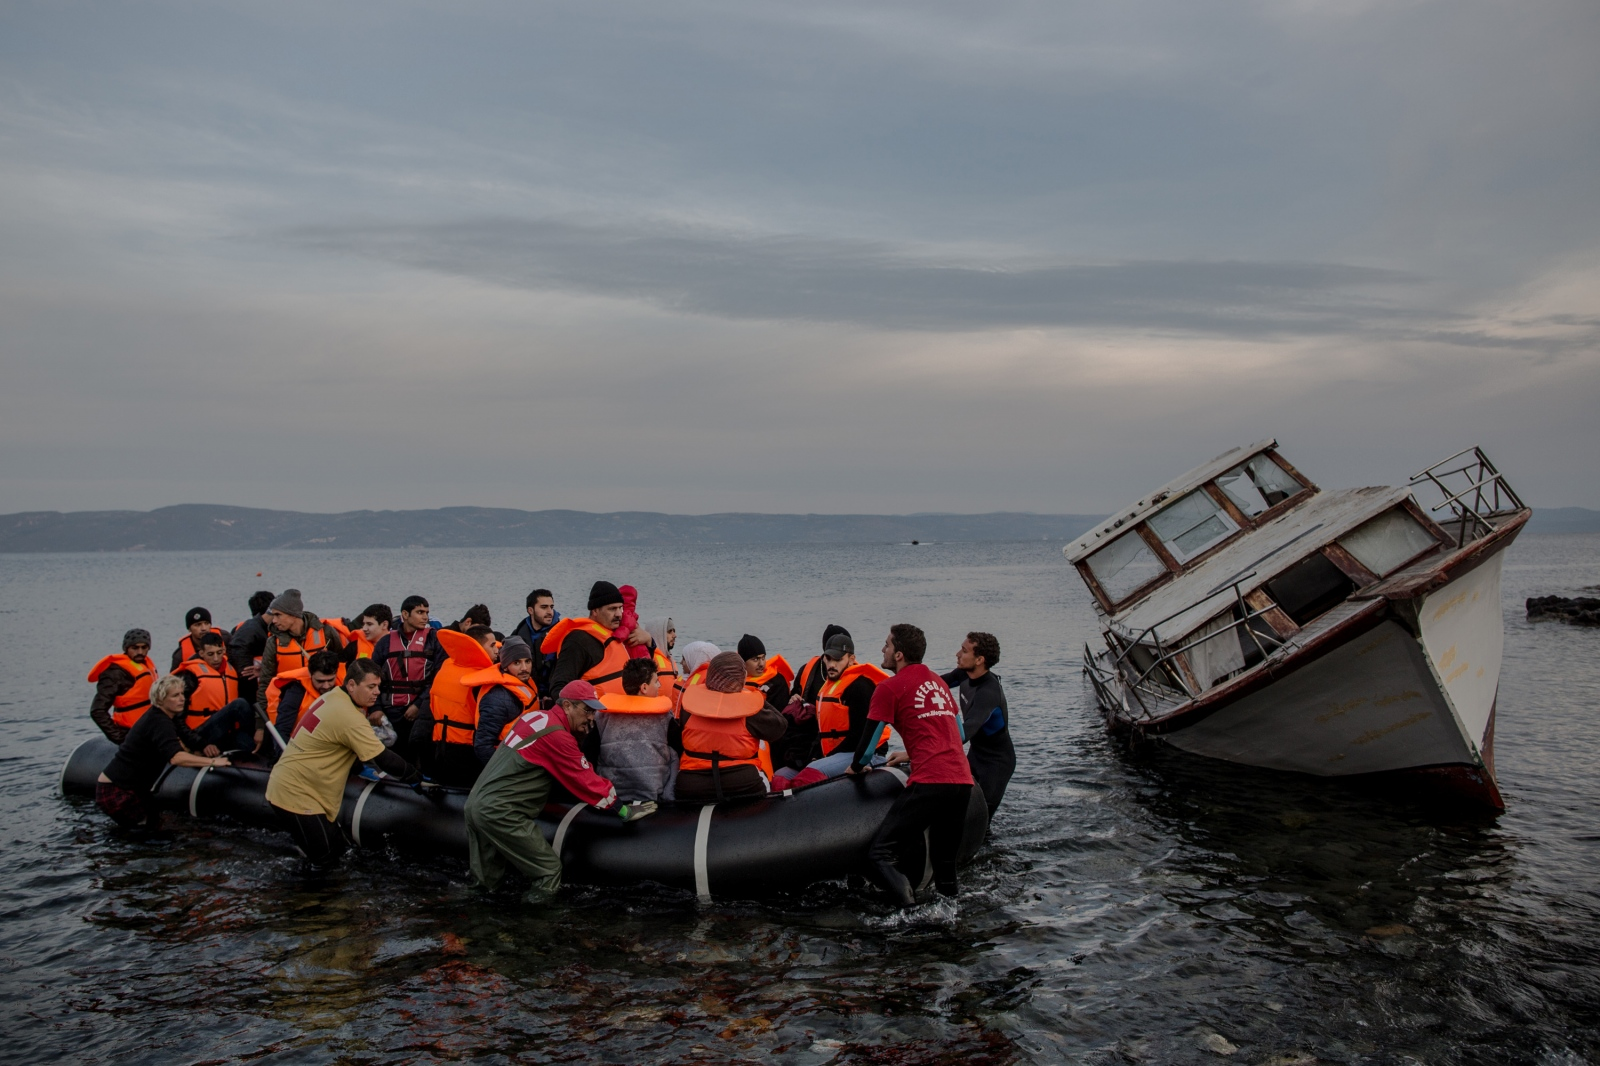 A rubber dingy, packed with refugees mostly from Syria, is assisted to shore in Lesbos, Greece, on November 16, 2015, after having crossed the Aegean Sea from Turkey. Nearby is a small wooden boat previously used by other refugees arriving in Greece.